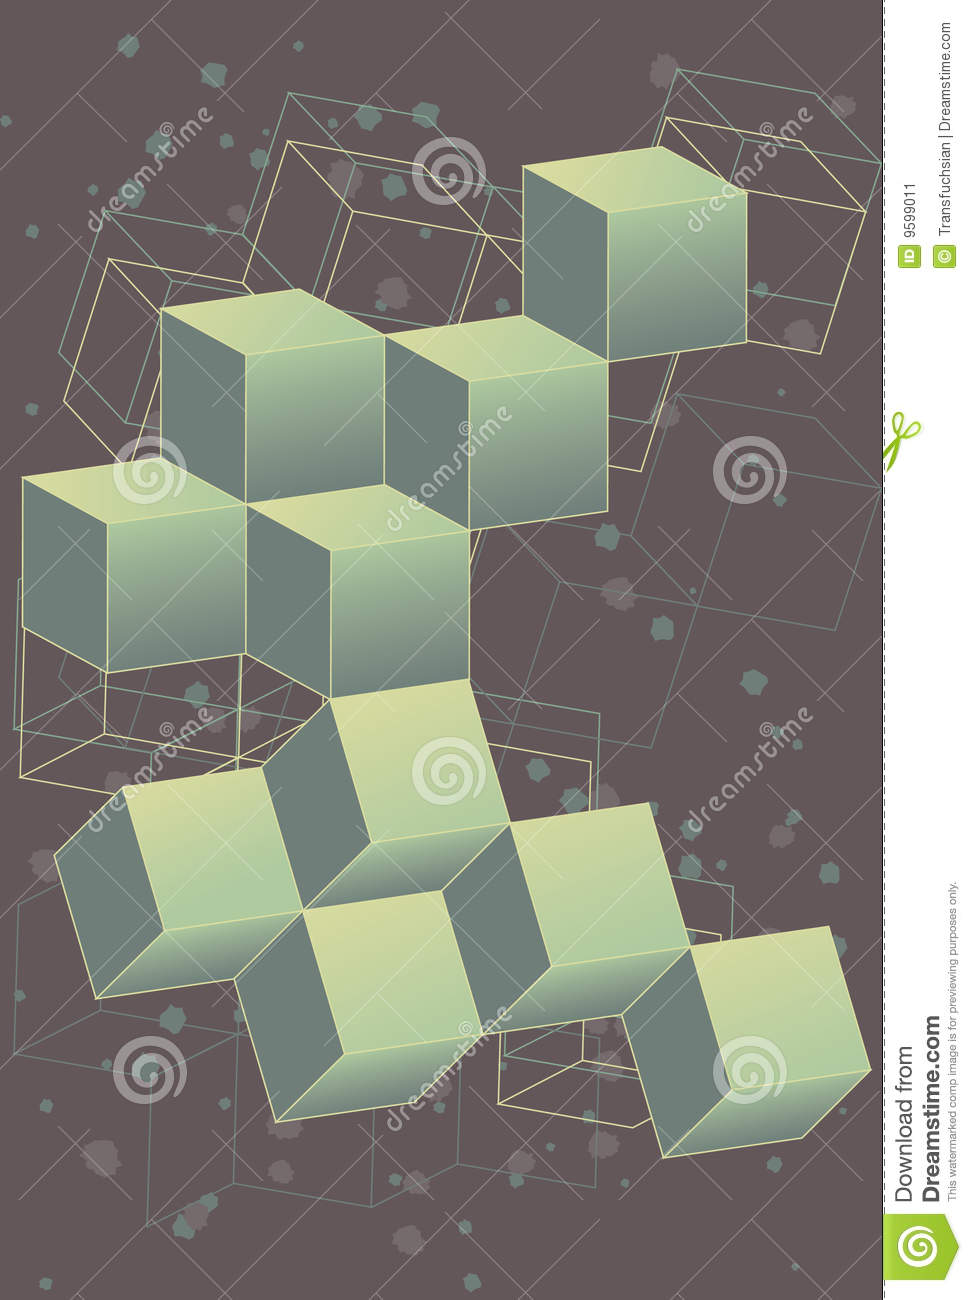 3 dimensional retro outer space cubes stock image image for 3d map of outer space